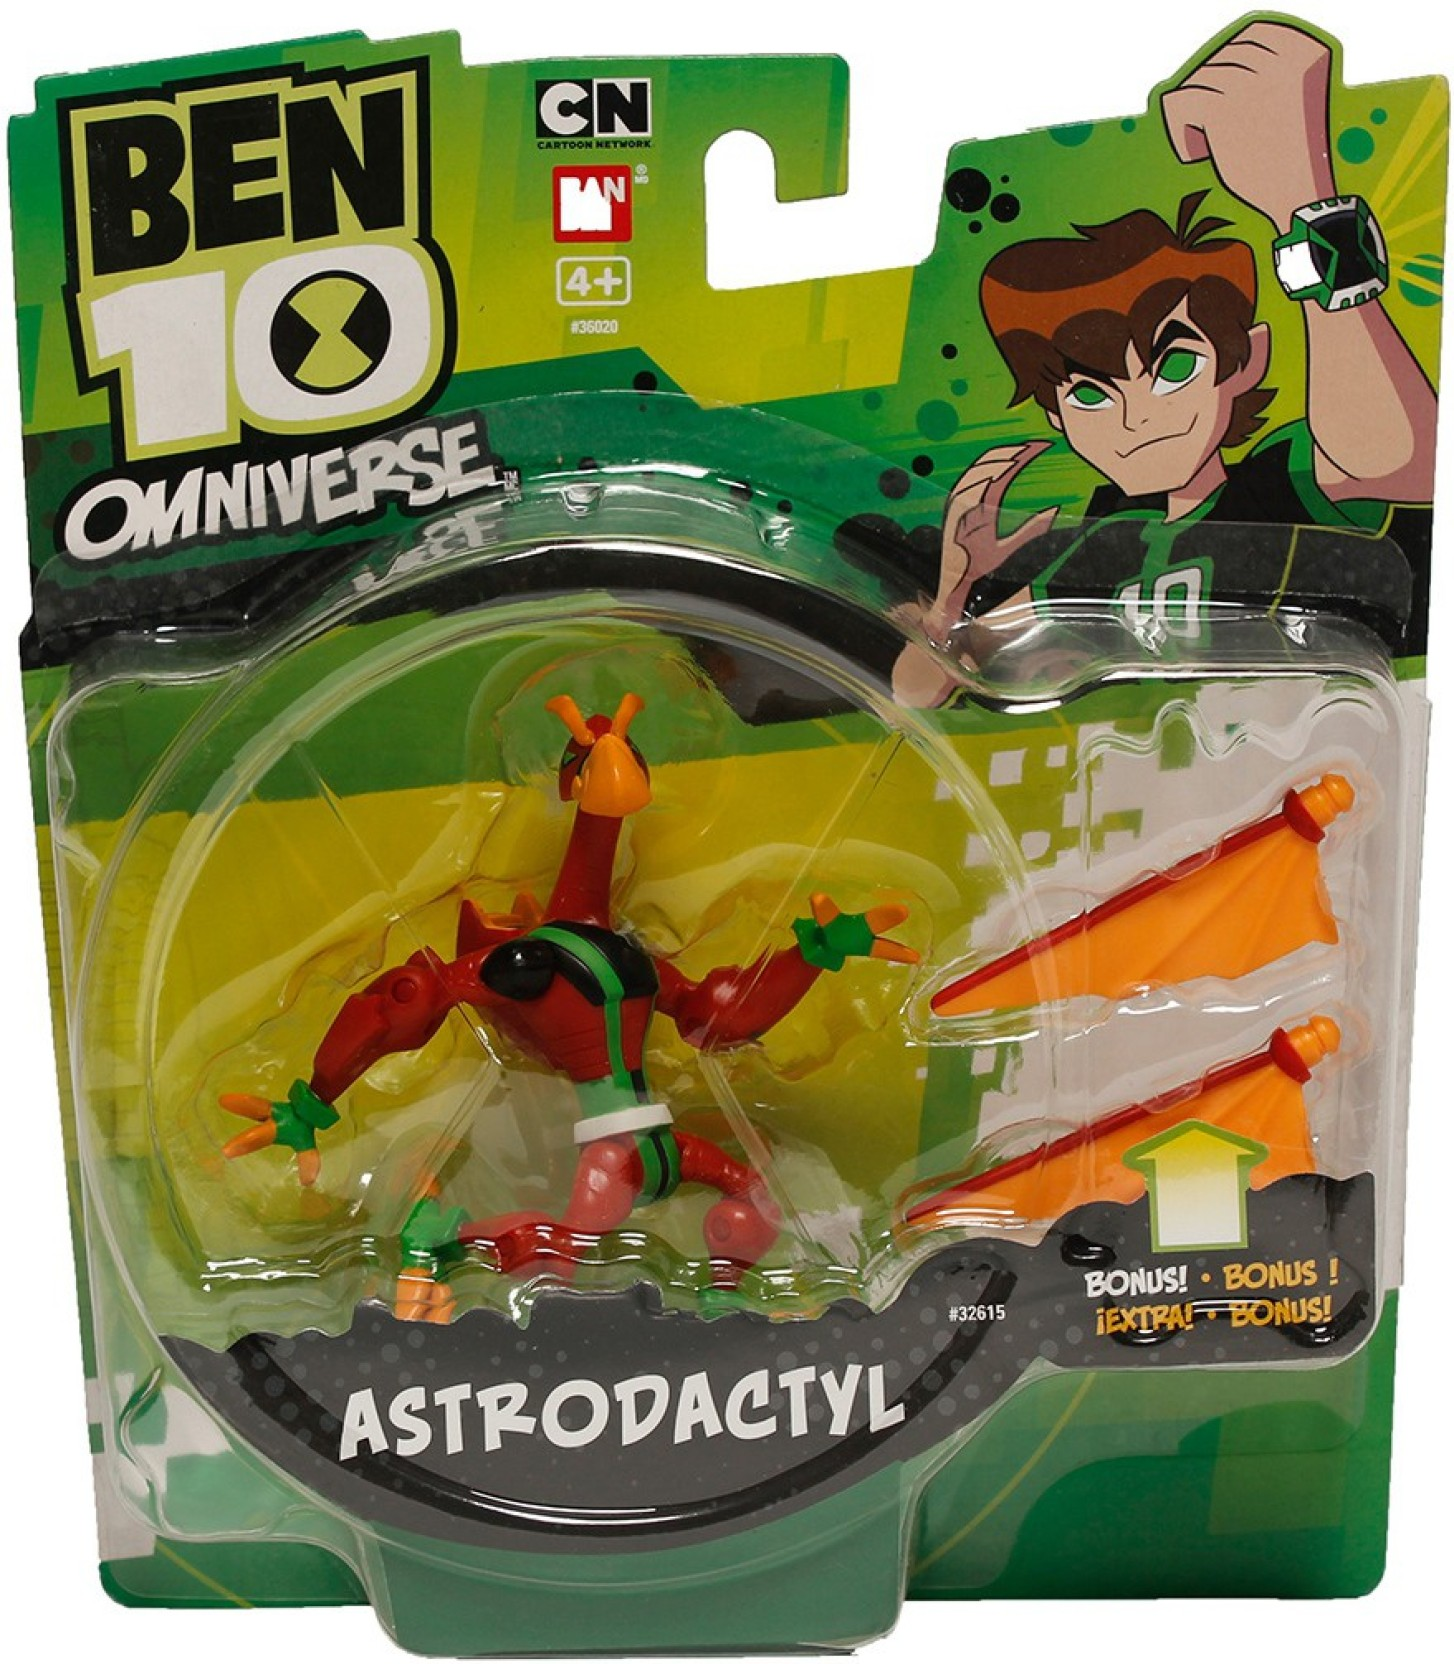 Ben 10 Omniverse Action Figure Astrodactyl 4 Astro Boy The Movie Original Share